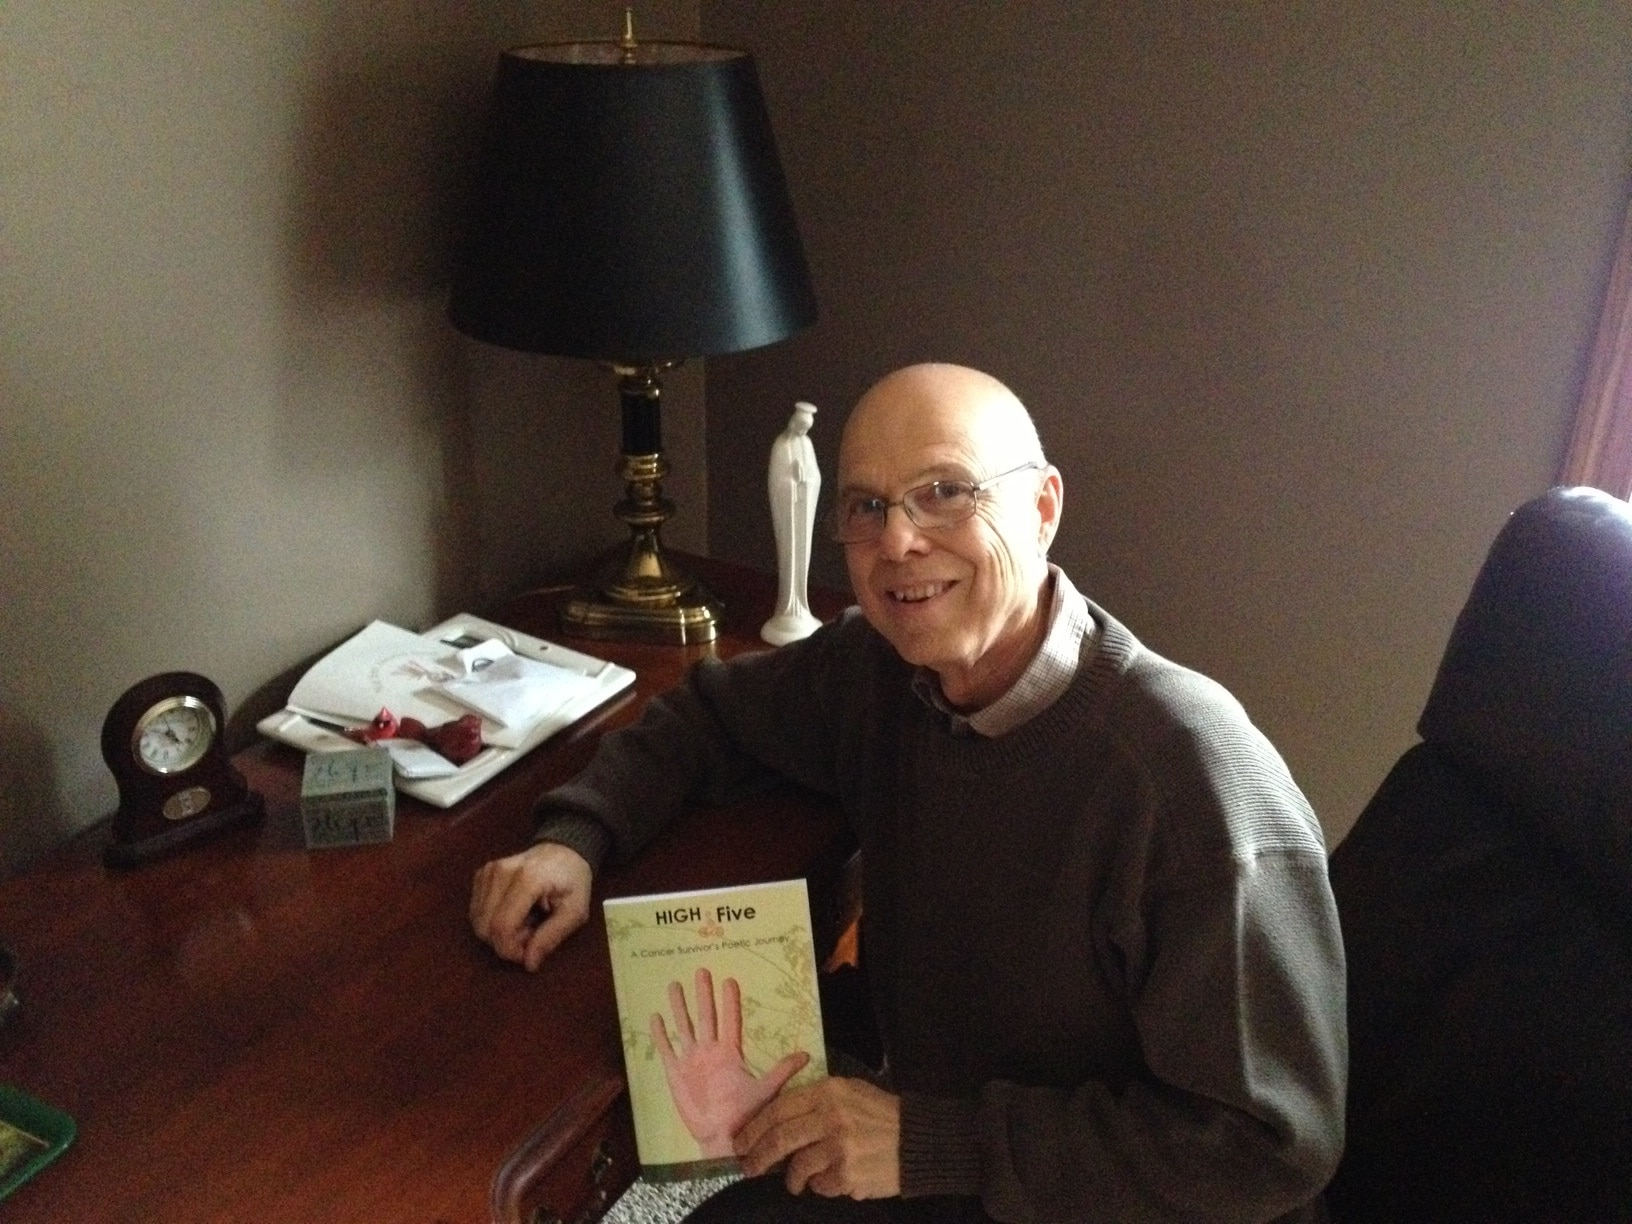 Dr. J. Campbell with book